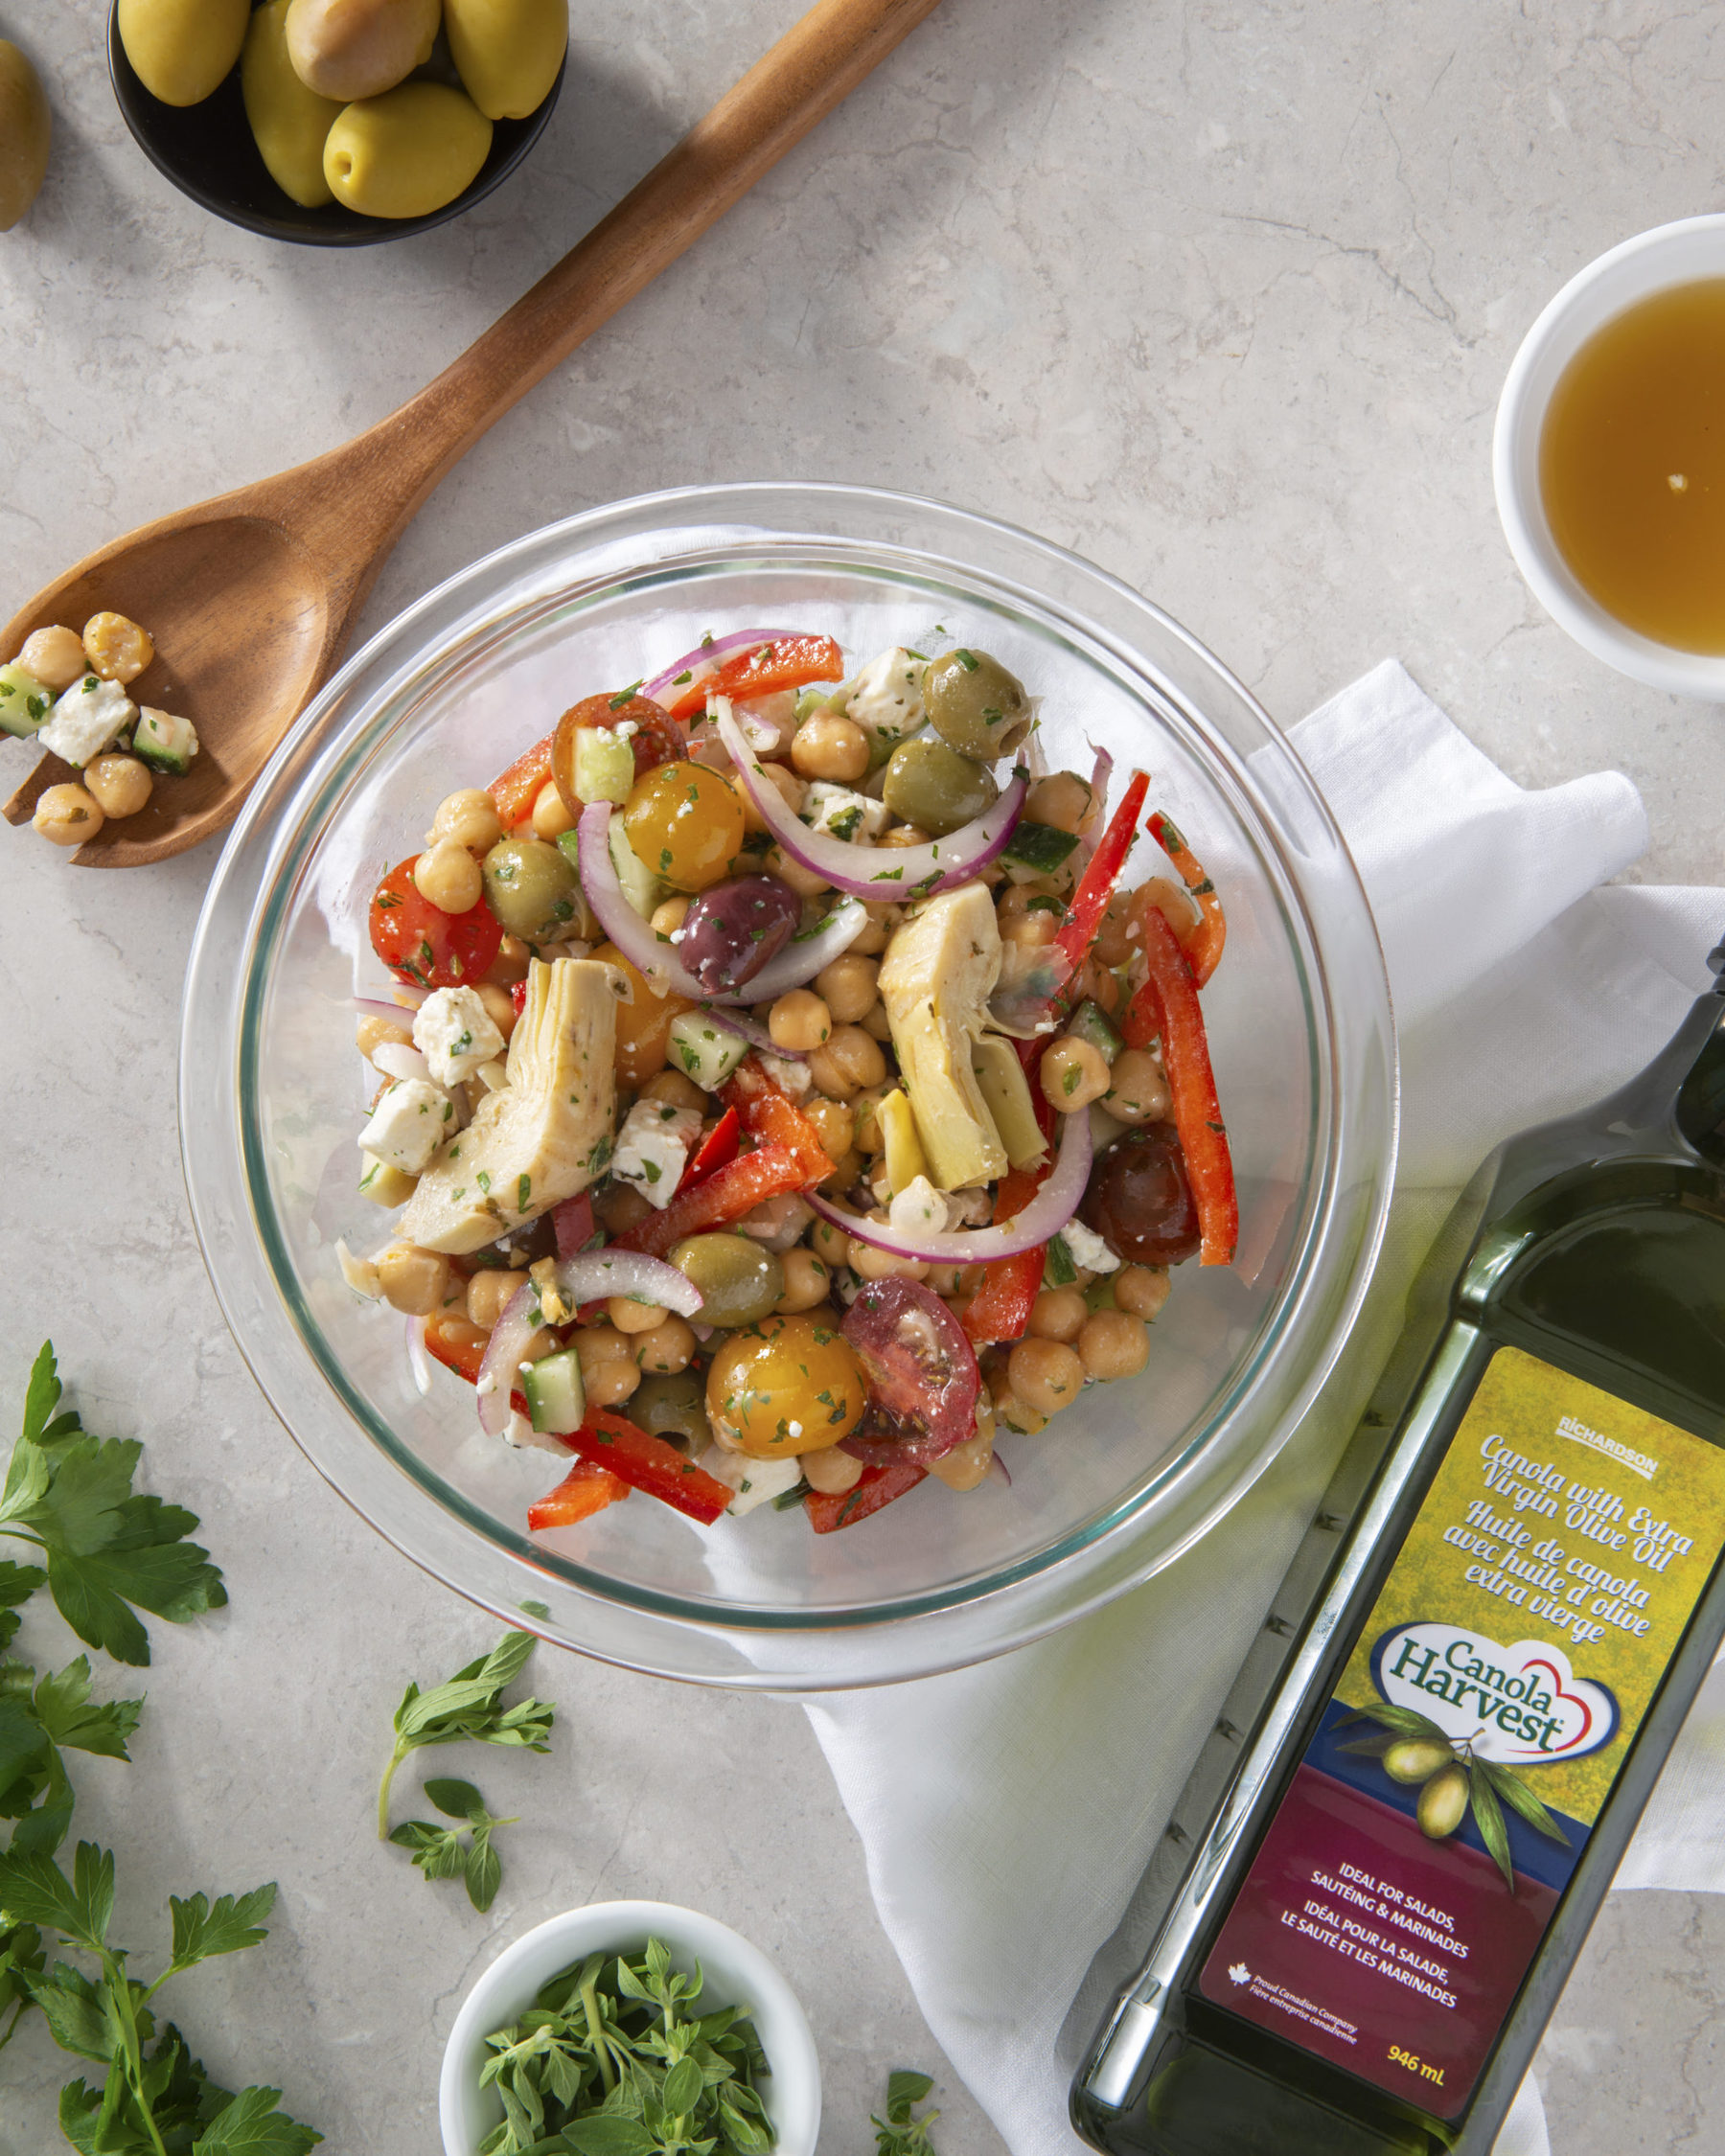 Image of chickpea salad featuring Canola Harvest Oil with Extra Virgin Olive Oil